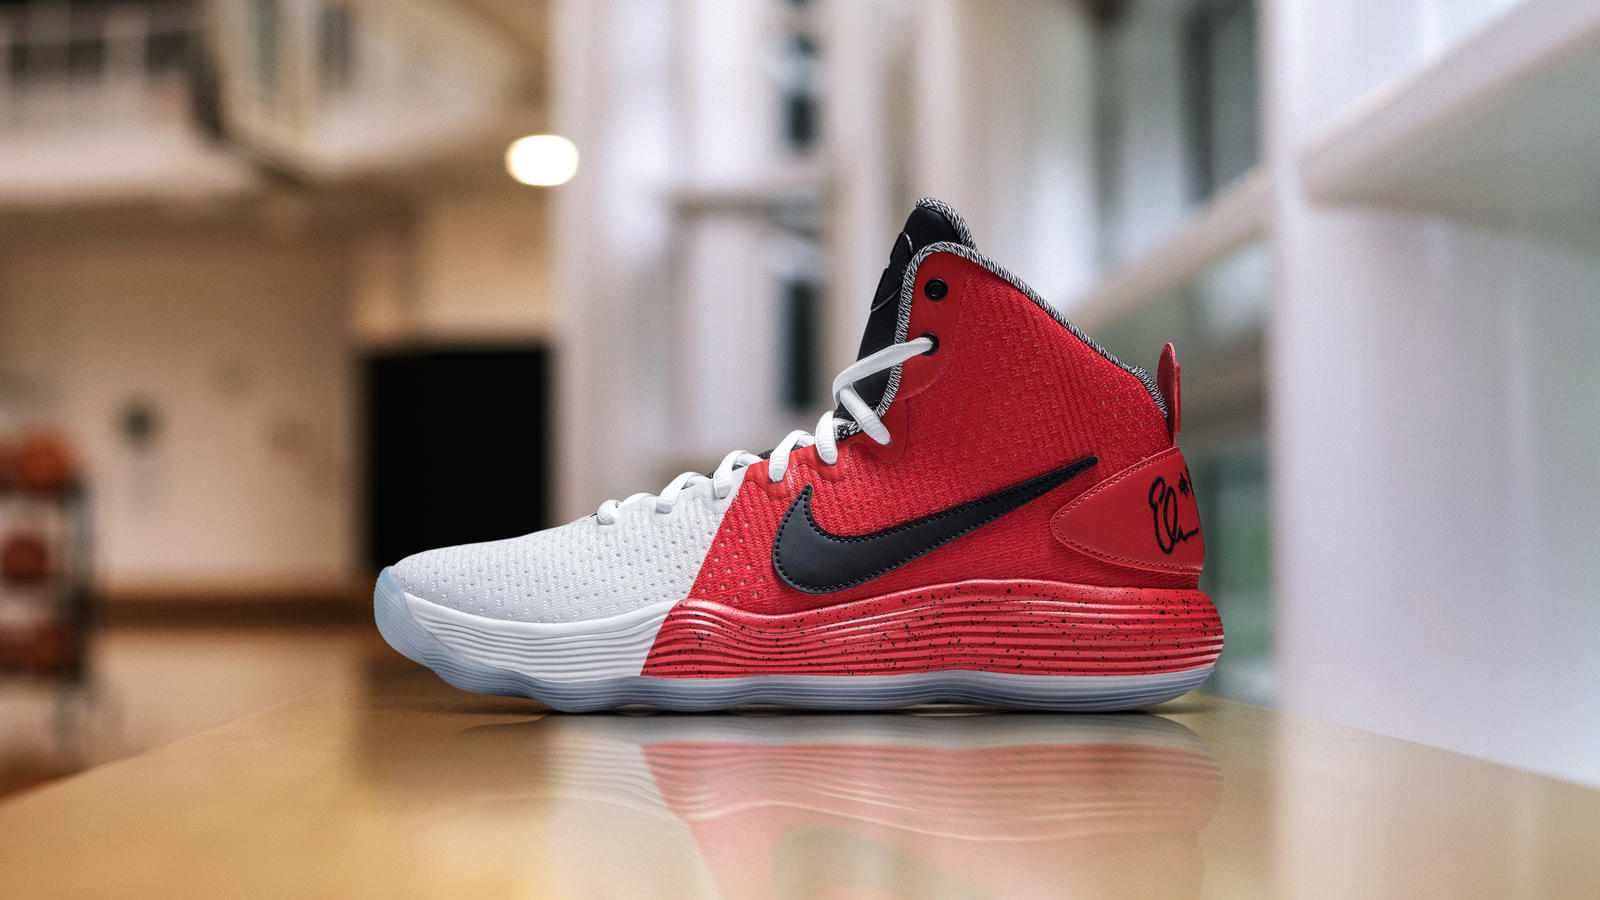 Abreviatura Entender estudio  Elena Delle Donne Honors Sheryl Swoopes with New Hyperdunk PE - WearTesters